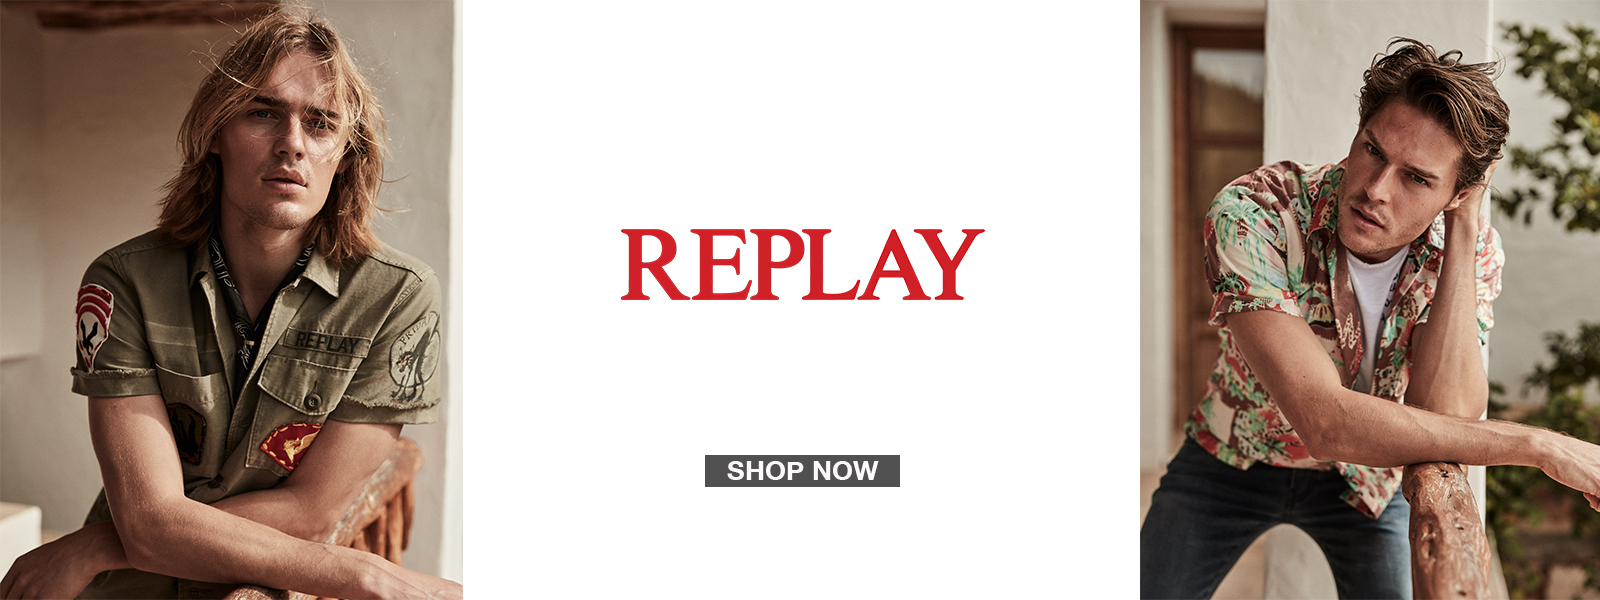 Replay - Spring Summer 19 Collection - Shop Now